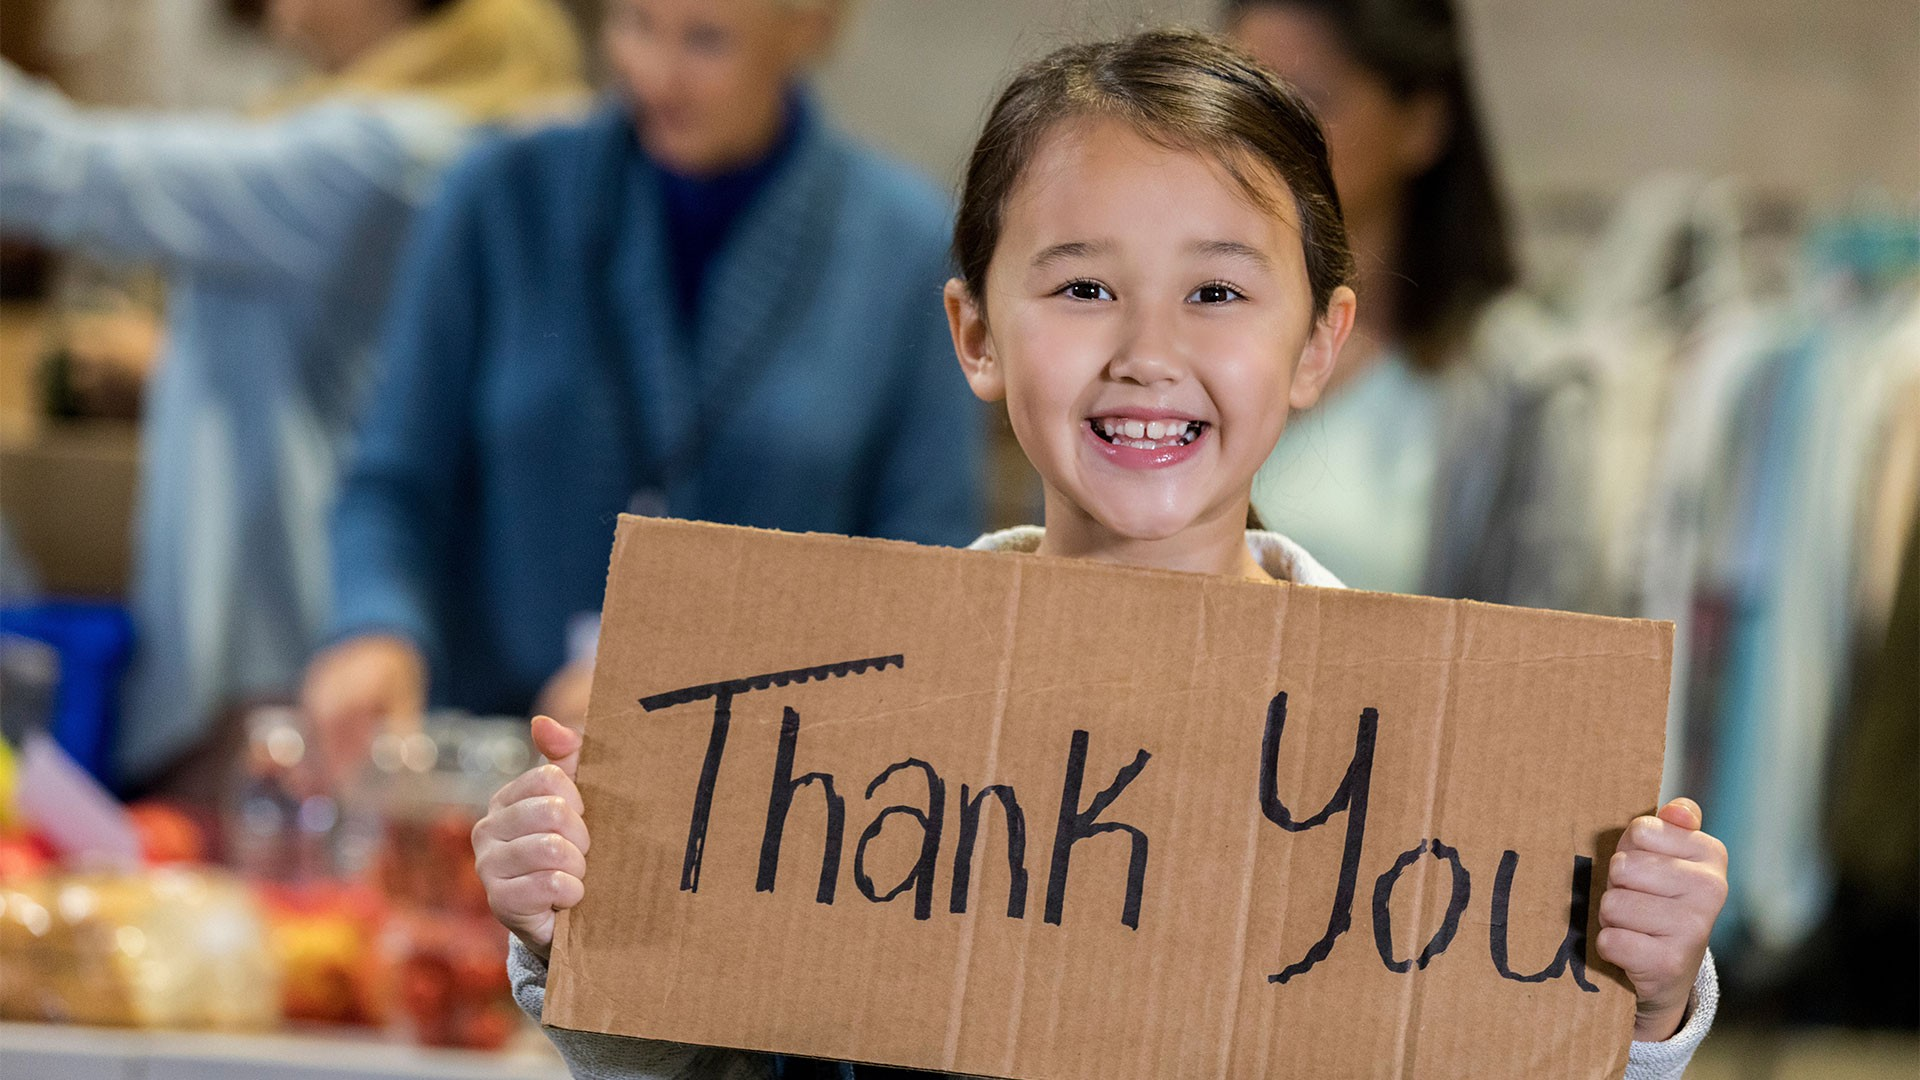 Little girl with thank you sign in a food bank